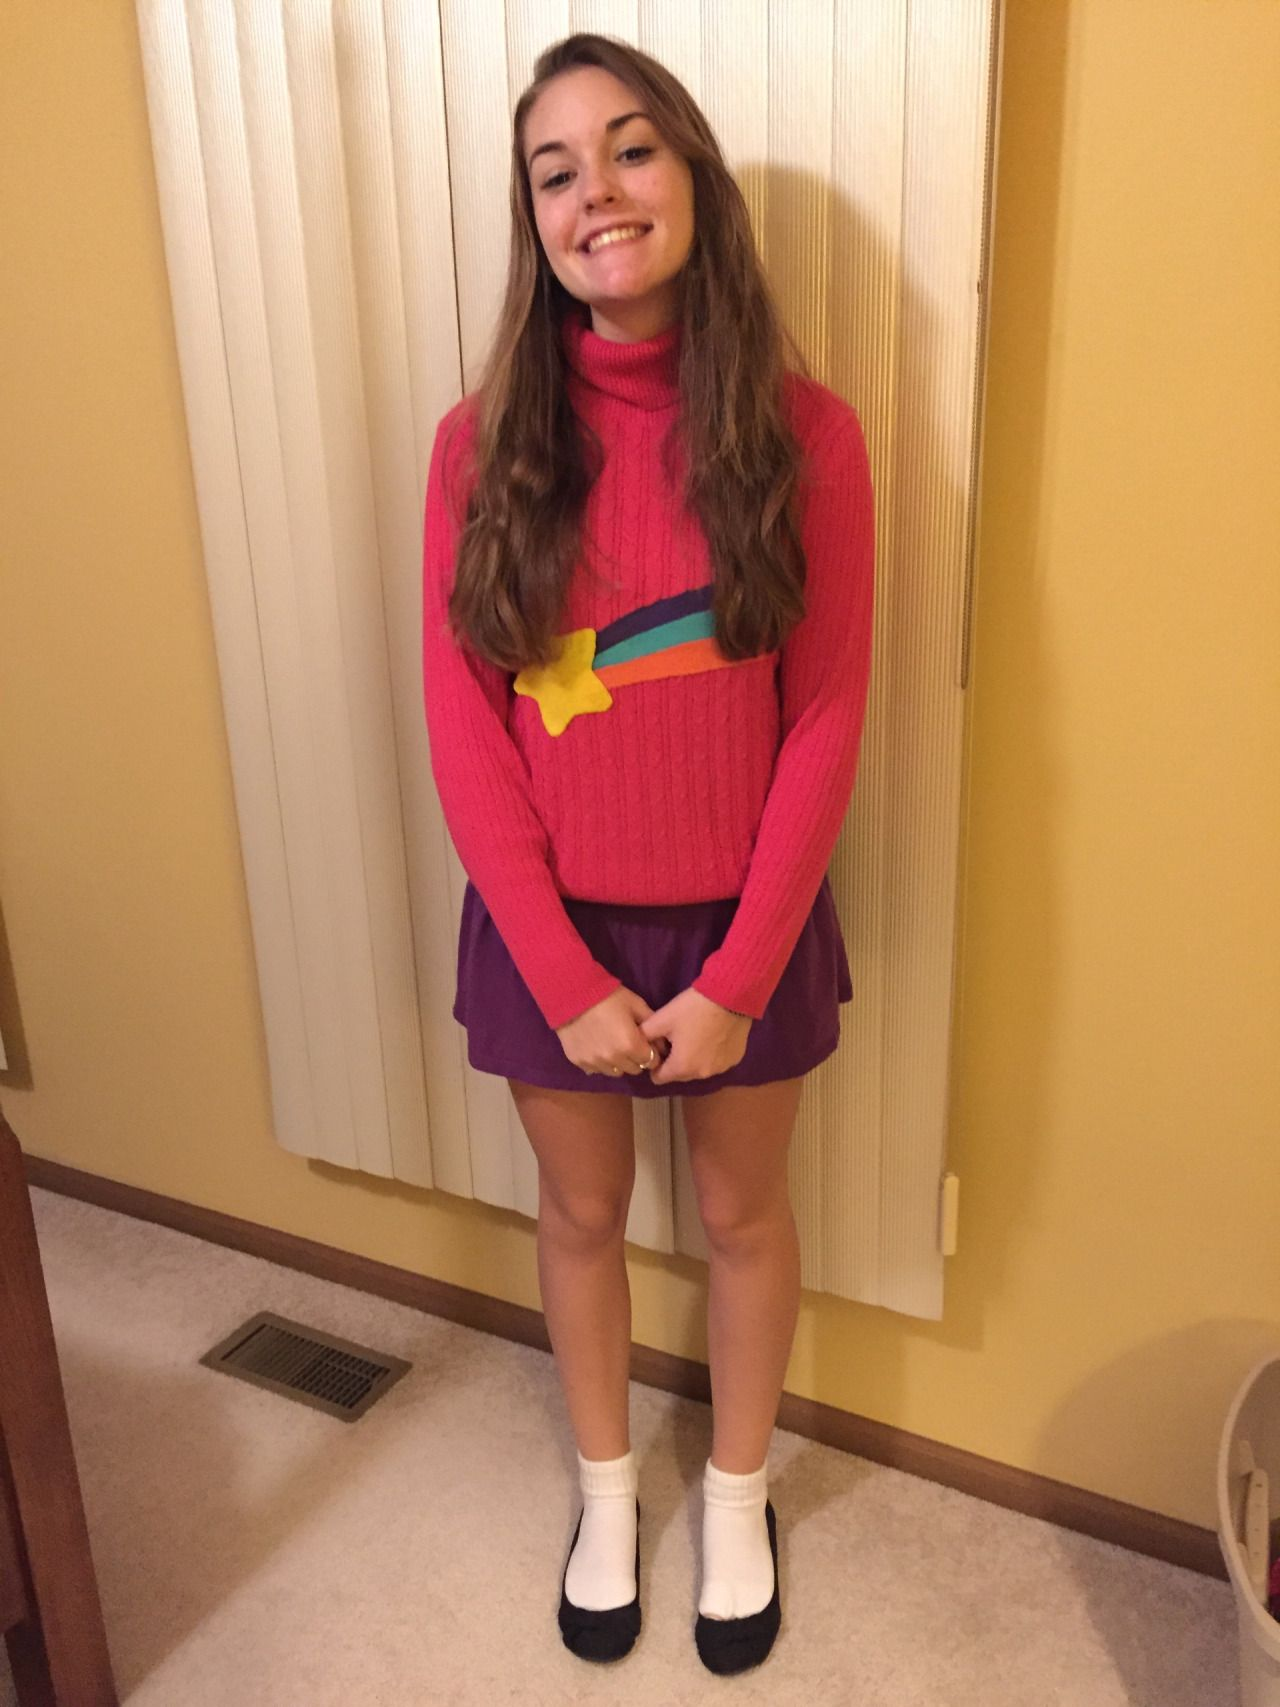 halloween costume im being mabel pines from gravity falls if you couldnt tell